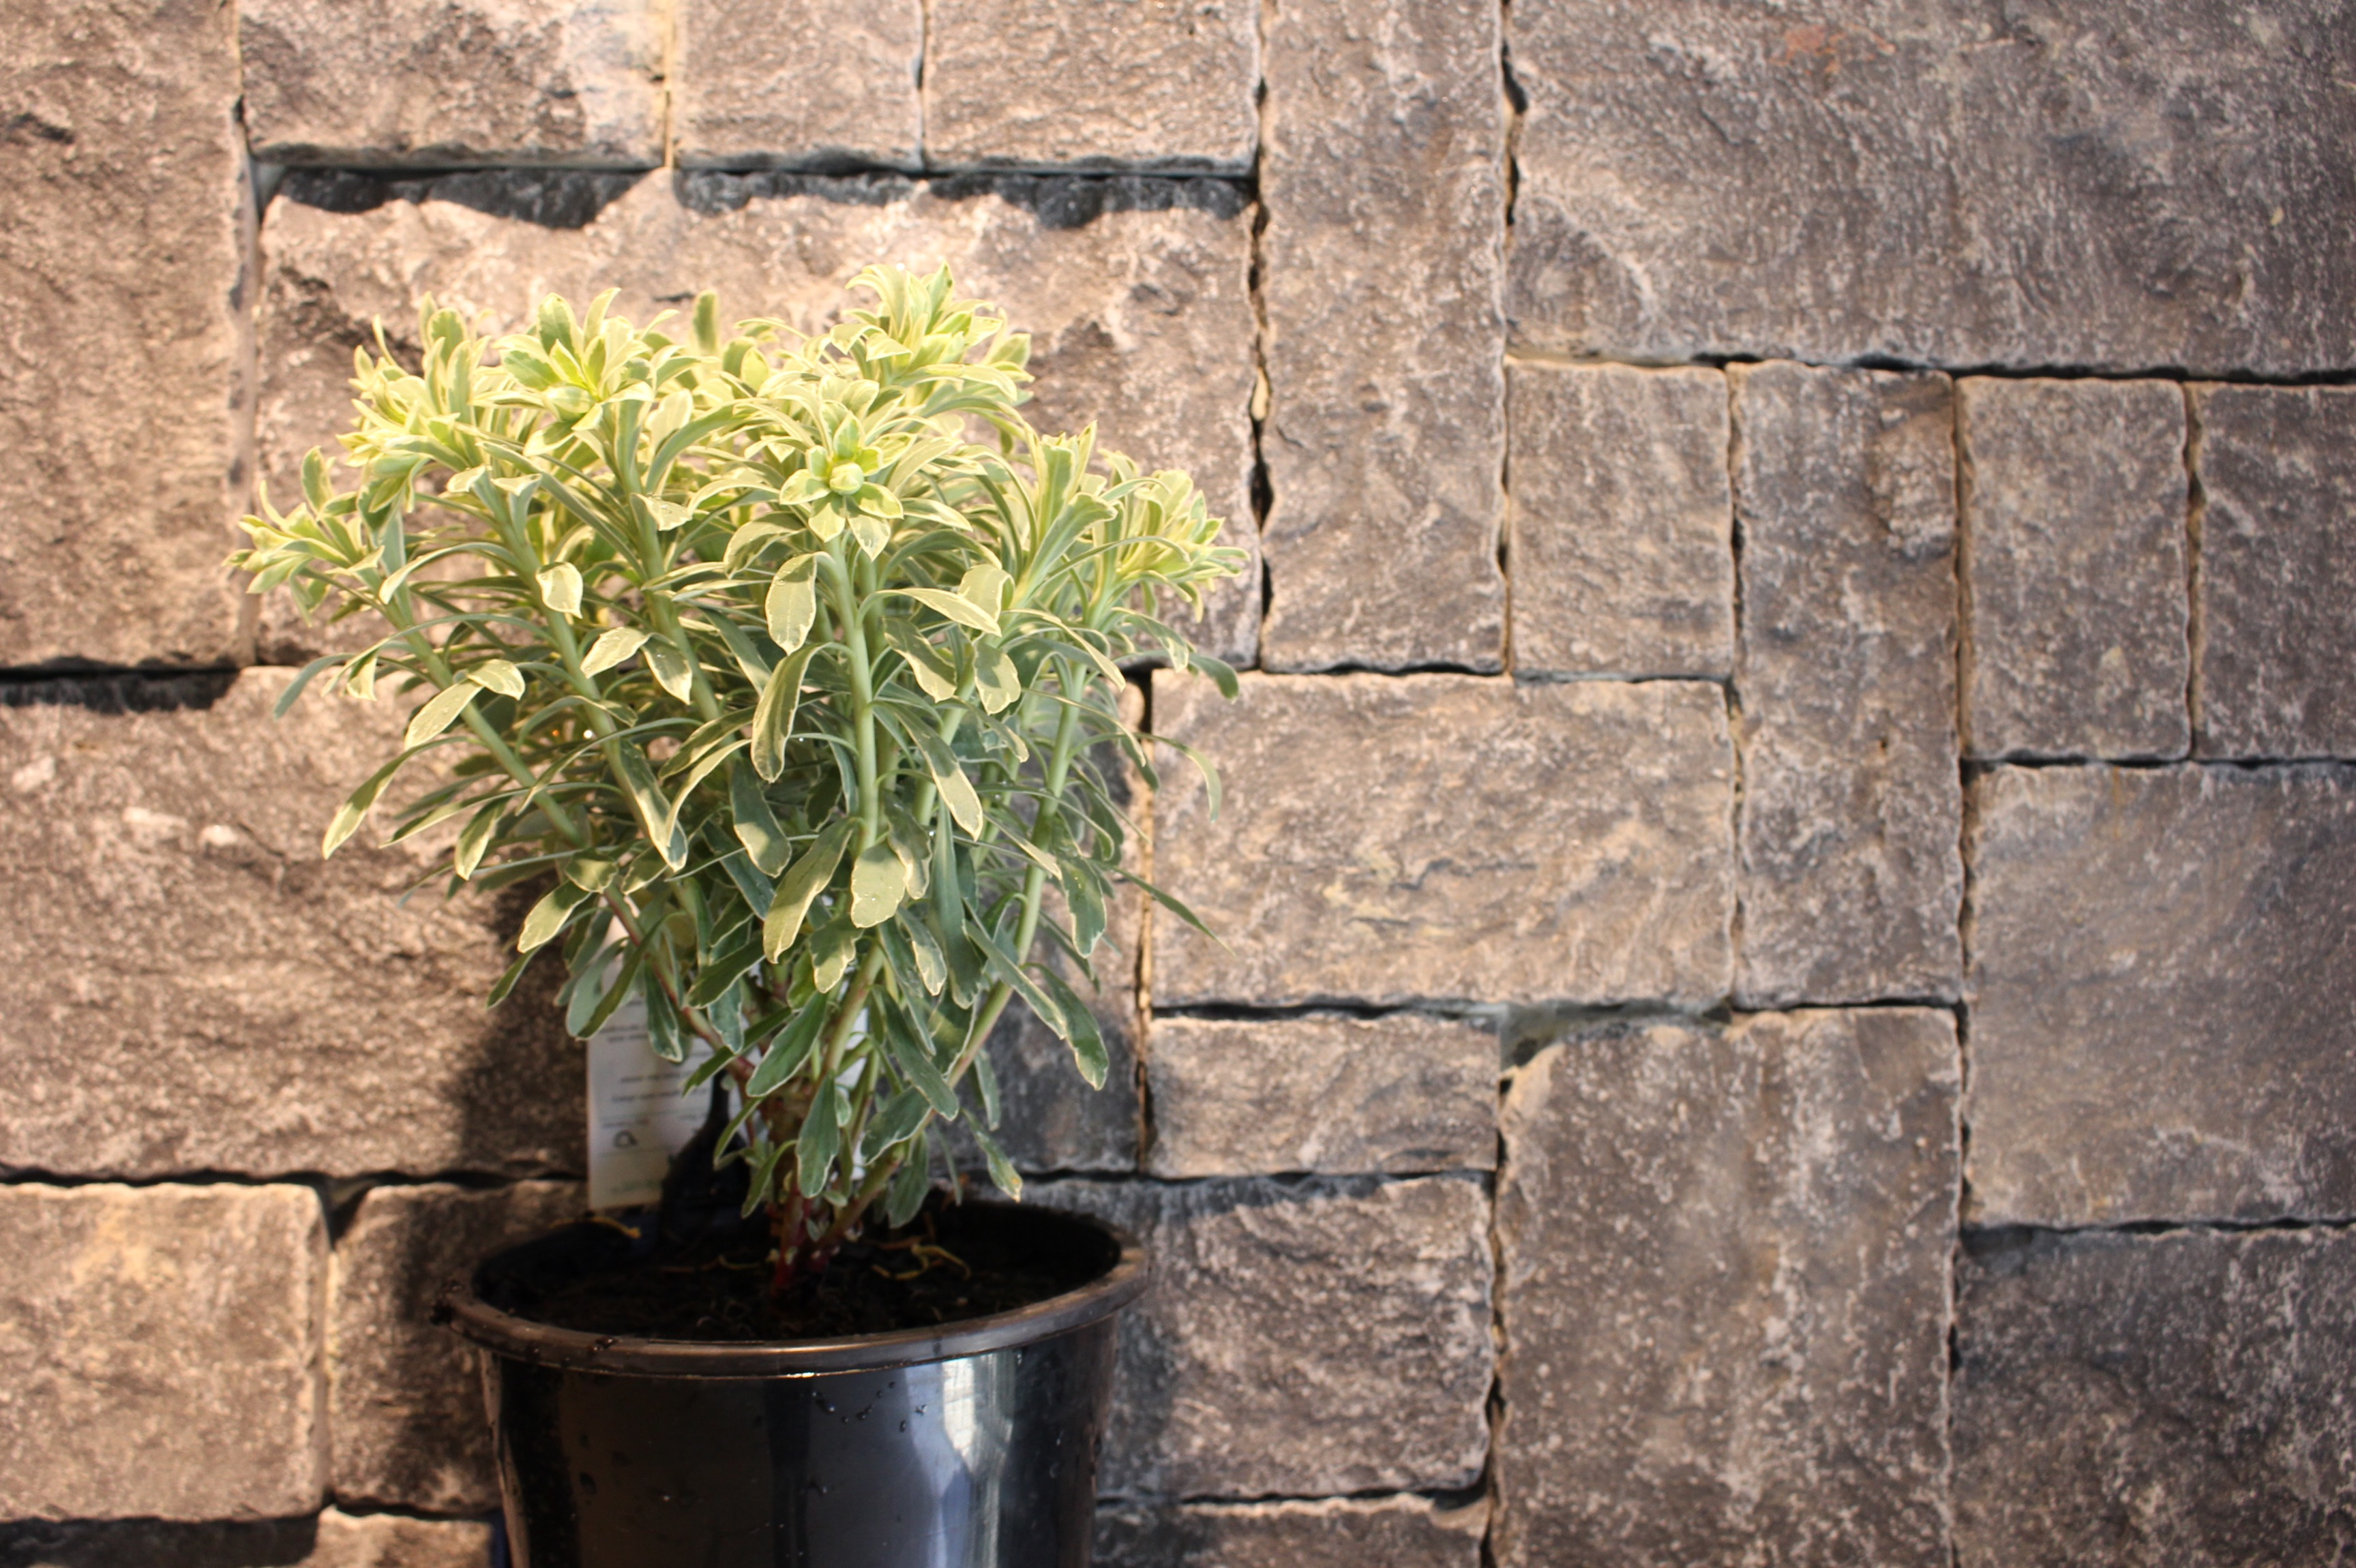 Weipa stone walling displayed as interior wall cladding in Lidcombe with some plant decoration